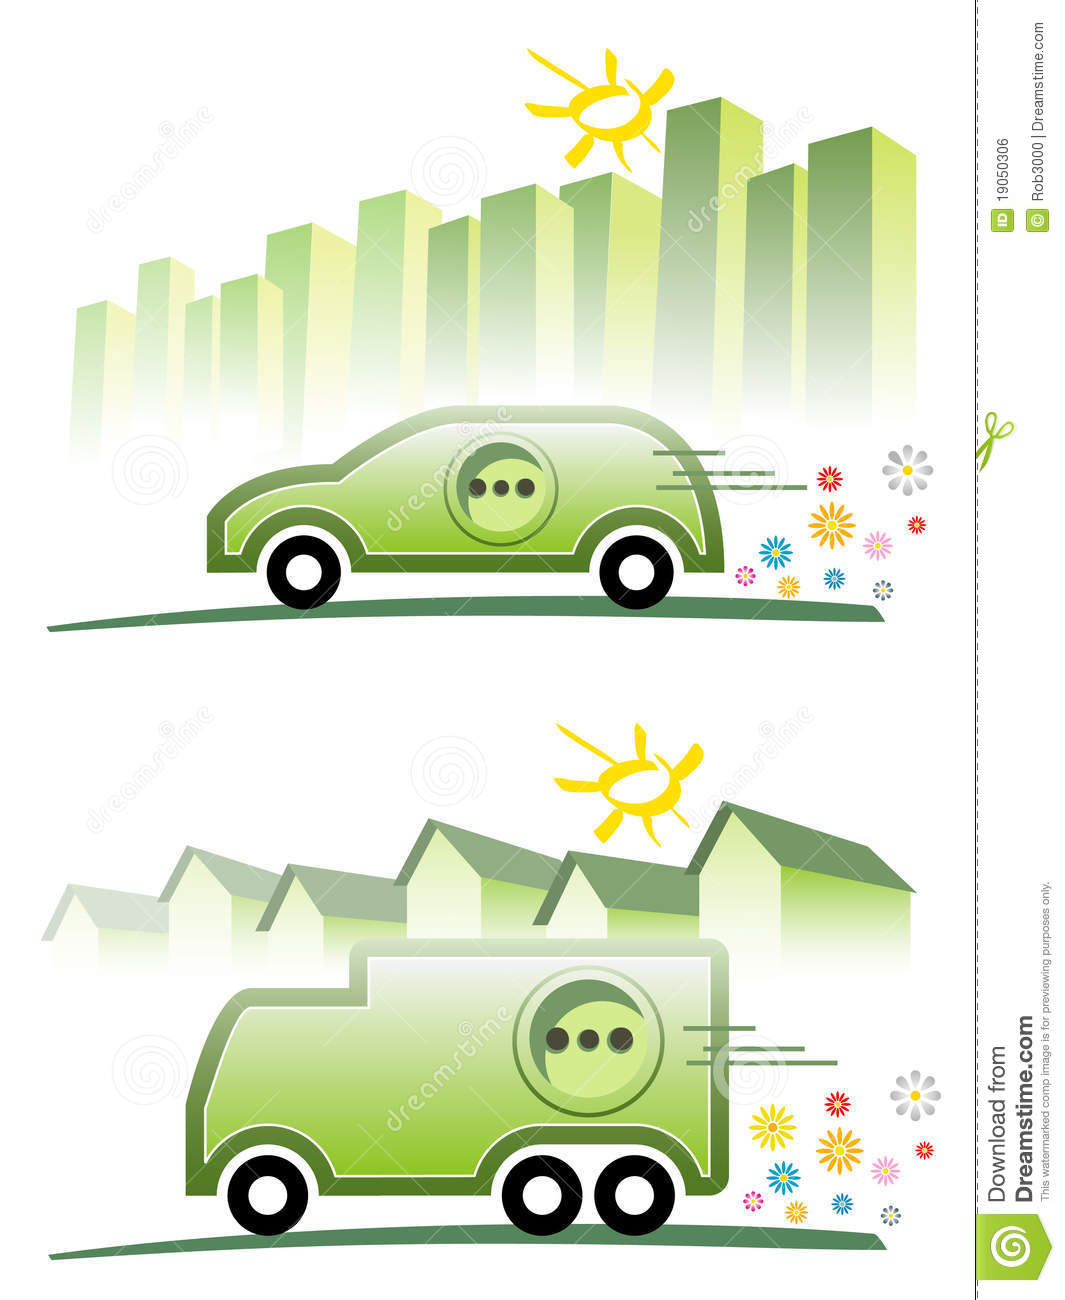 Electric Mobility Royalty Free Stock Image.